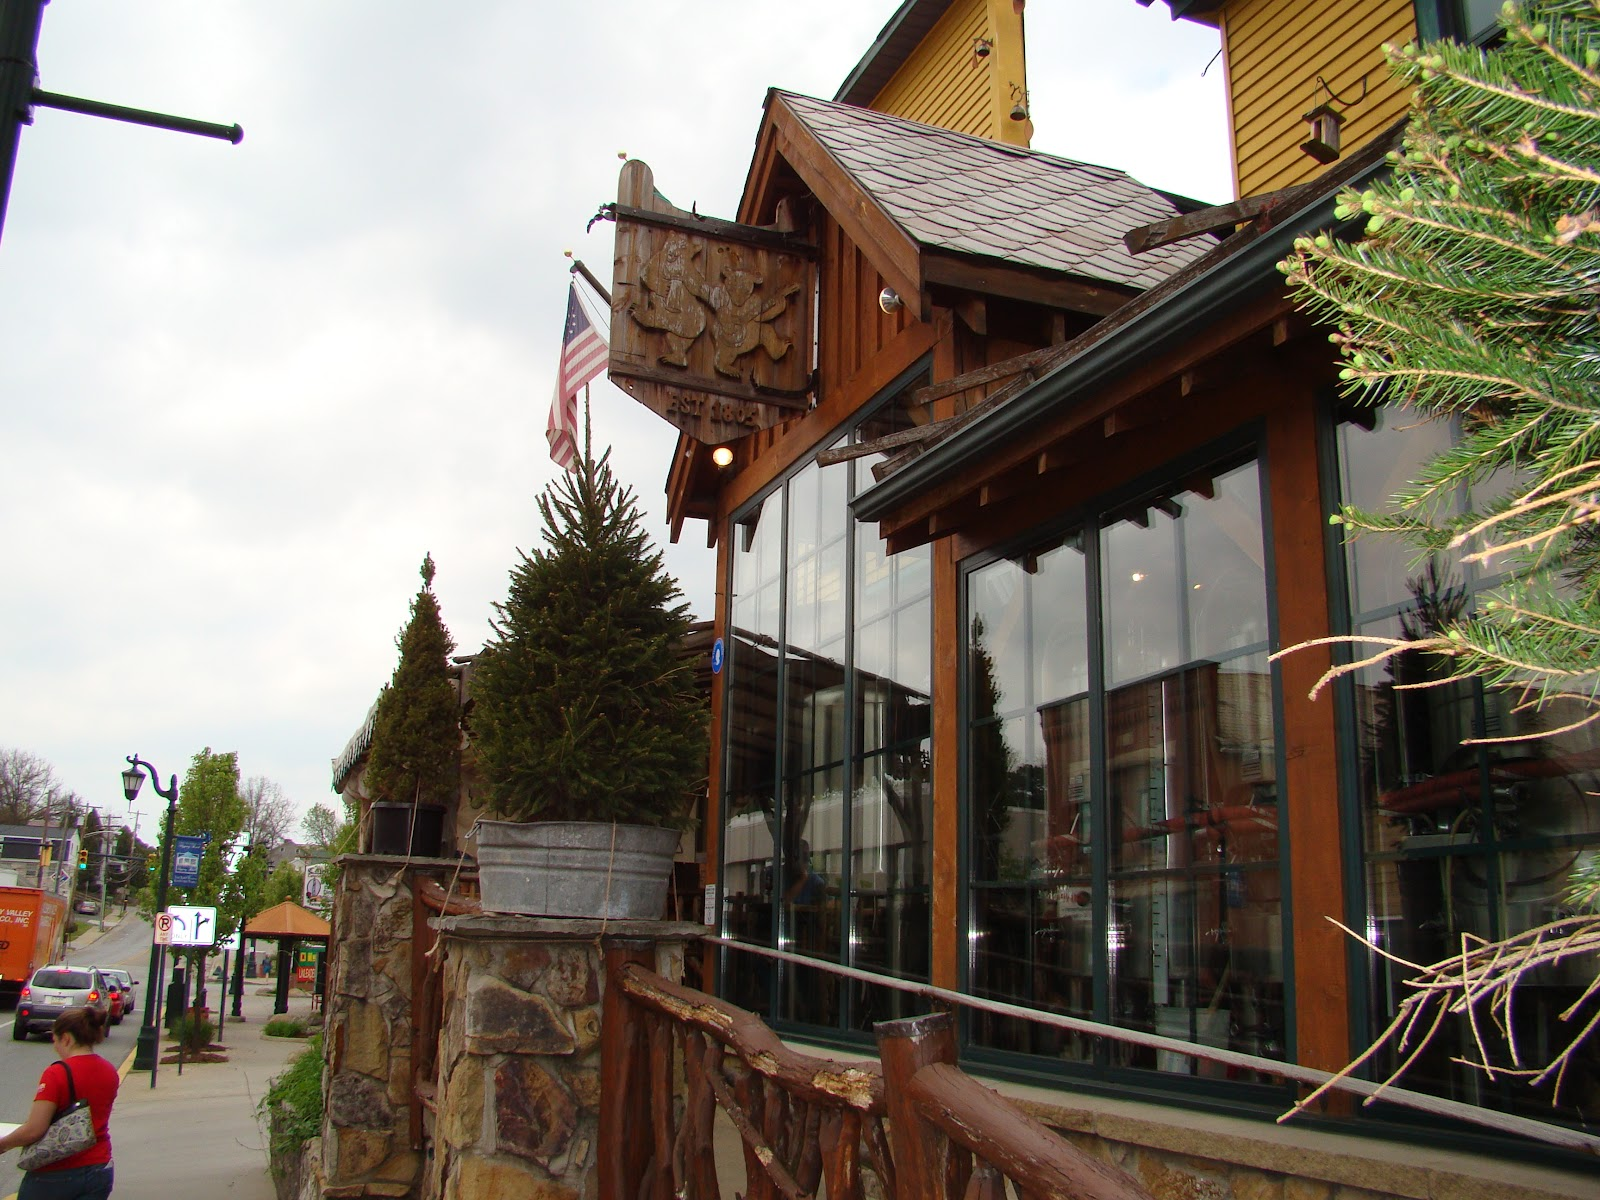 Are We There Yet My Travel Blog You Can Eat Gluten Free In Slippery Rock Pennsylvania